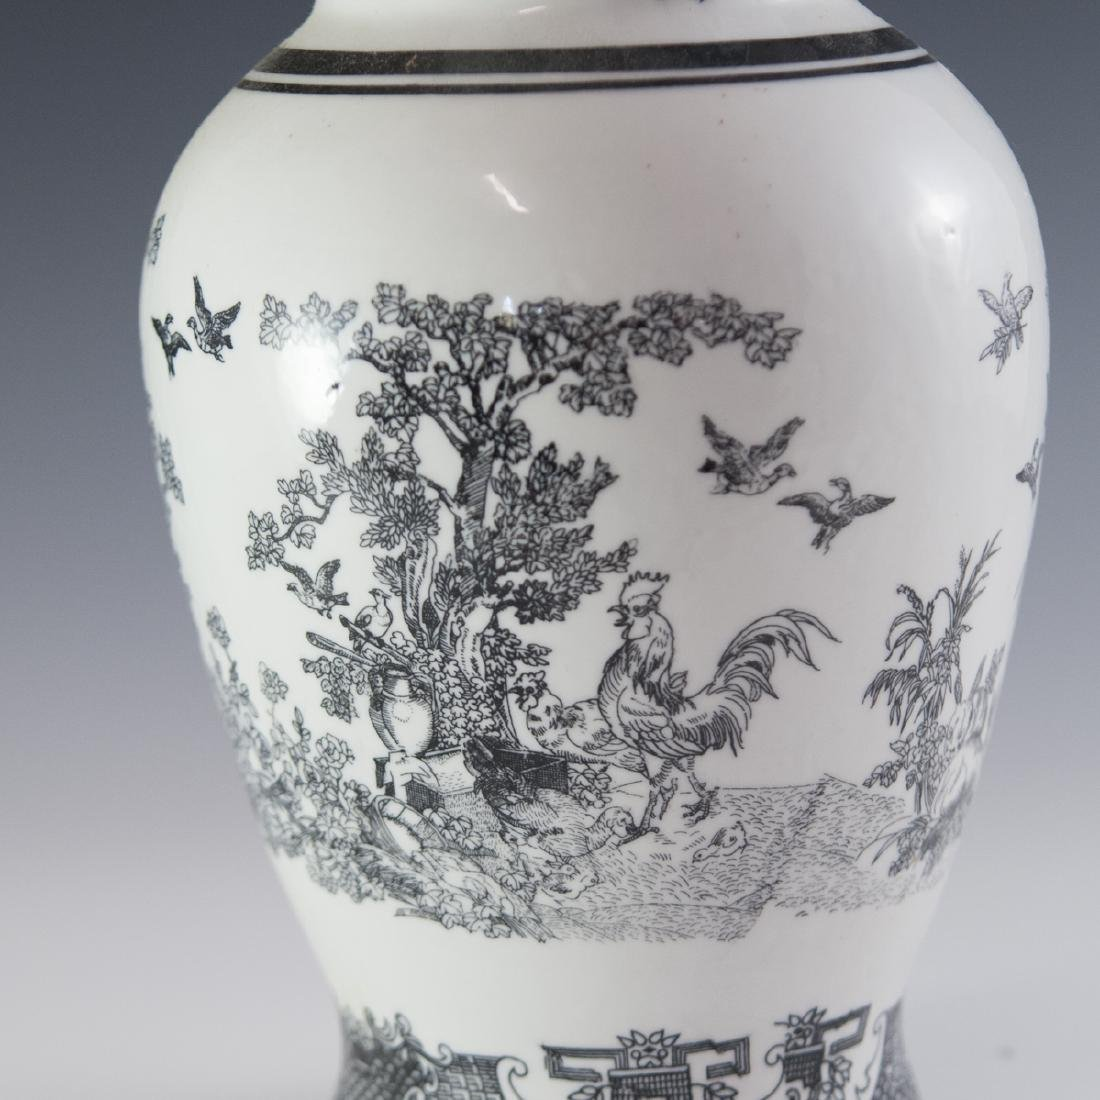 Decorative Chinese Porcelain Vase - 4